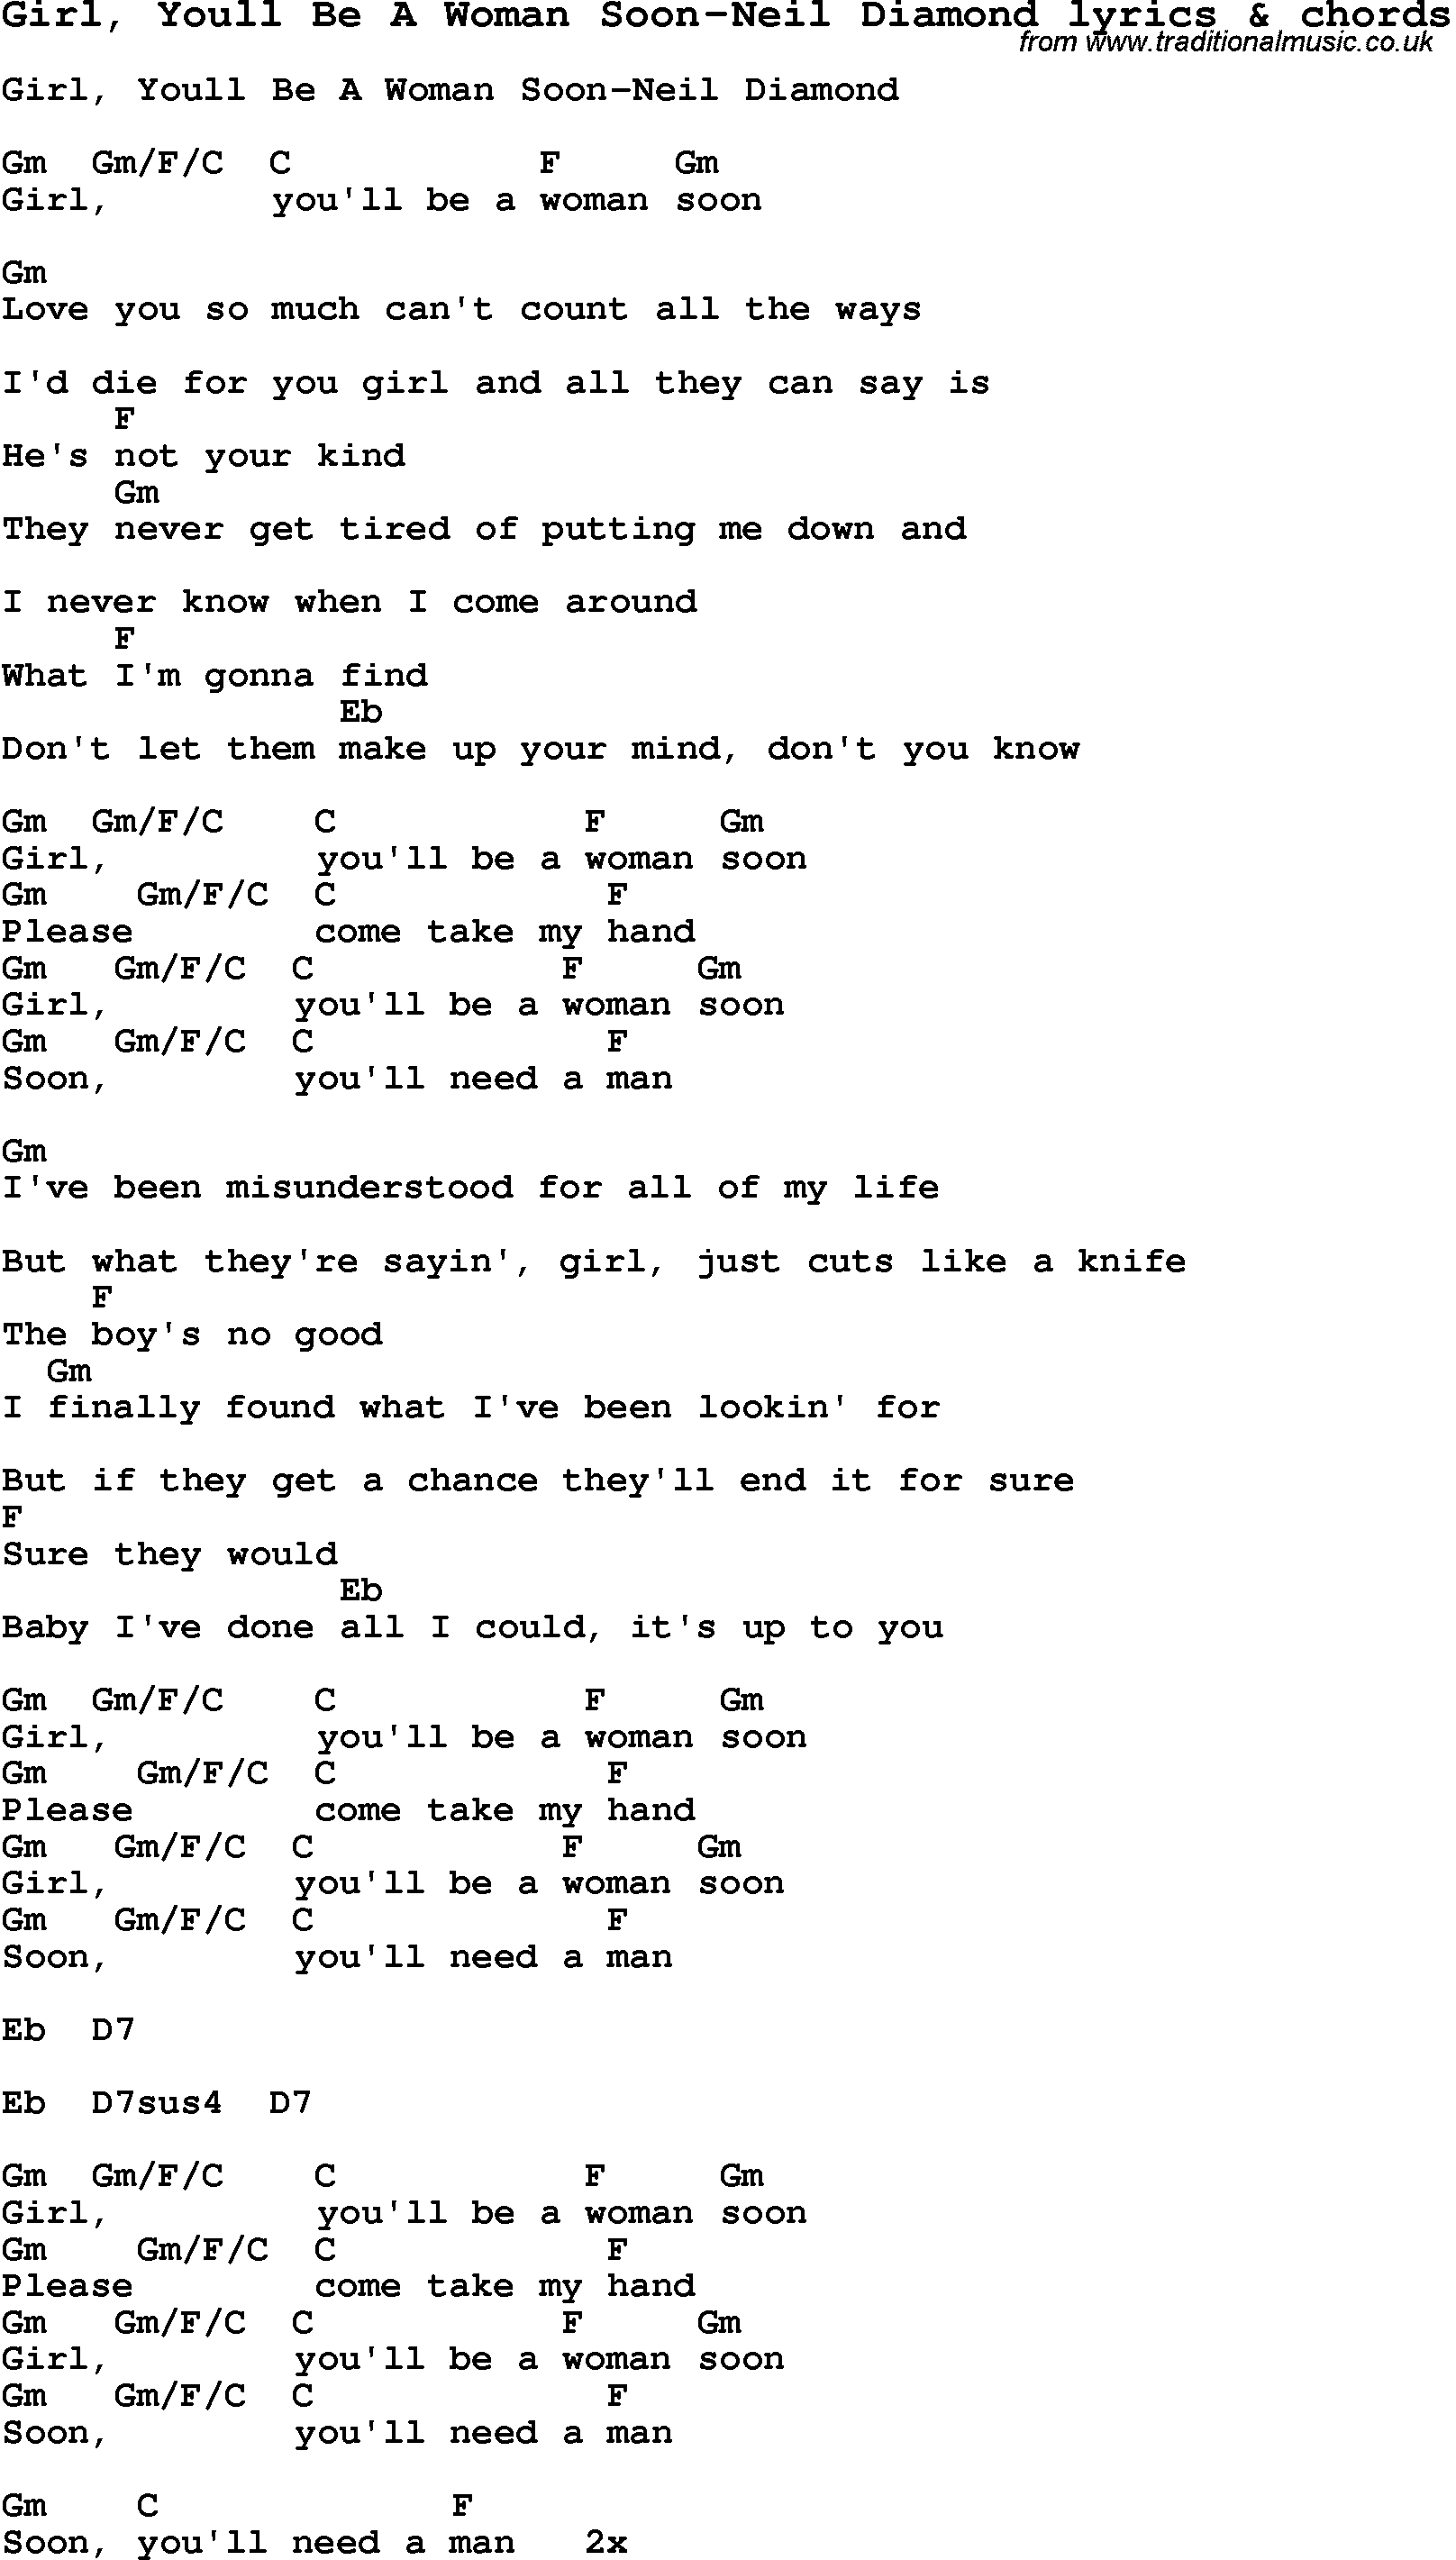 http://www.traditionalmusic.co.uk/love-lyrics-chords/png/girl_youll_be_a_woman_soon-neil_diamond_crd.png